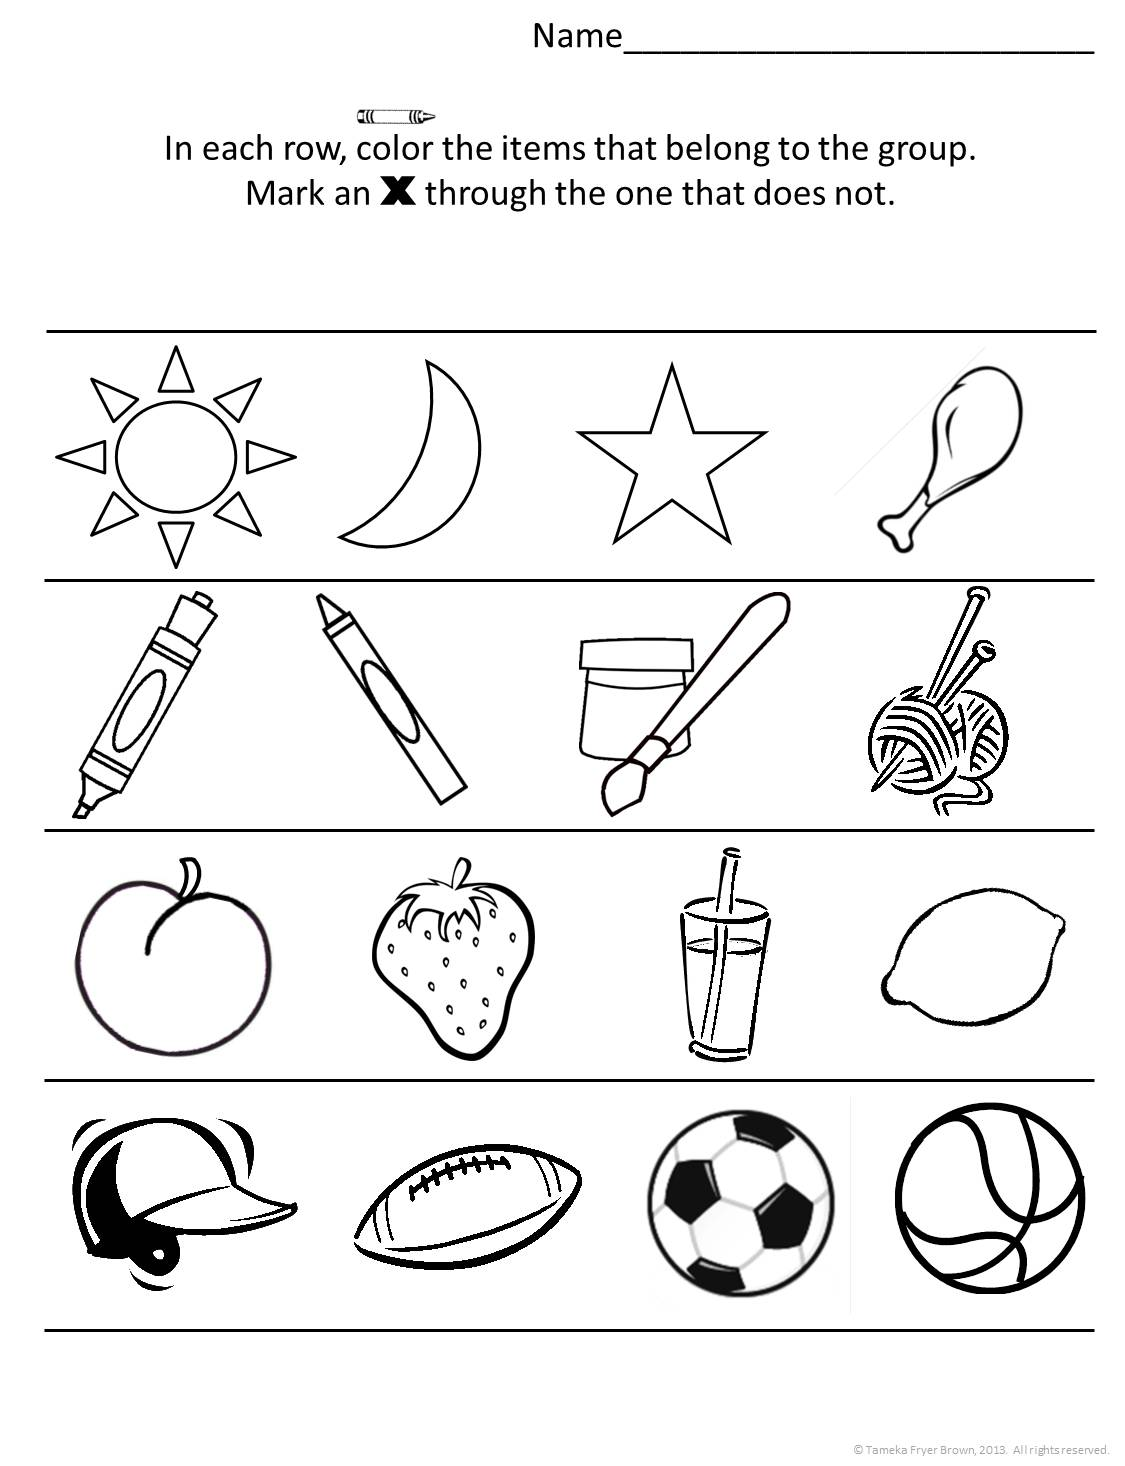 10 Best Images Of What Shape Does Not Belong Worksheet